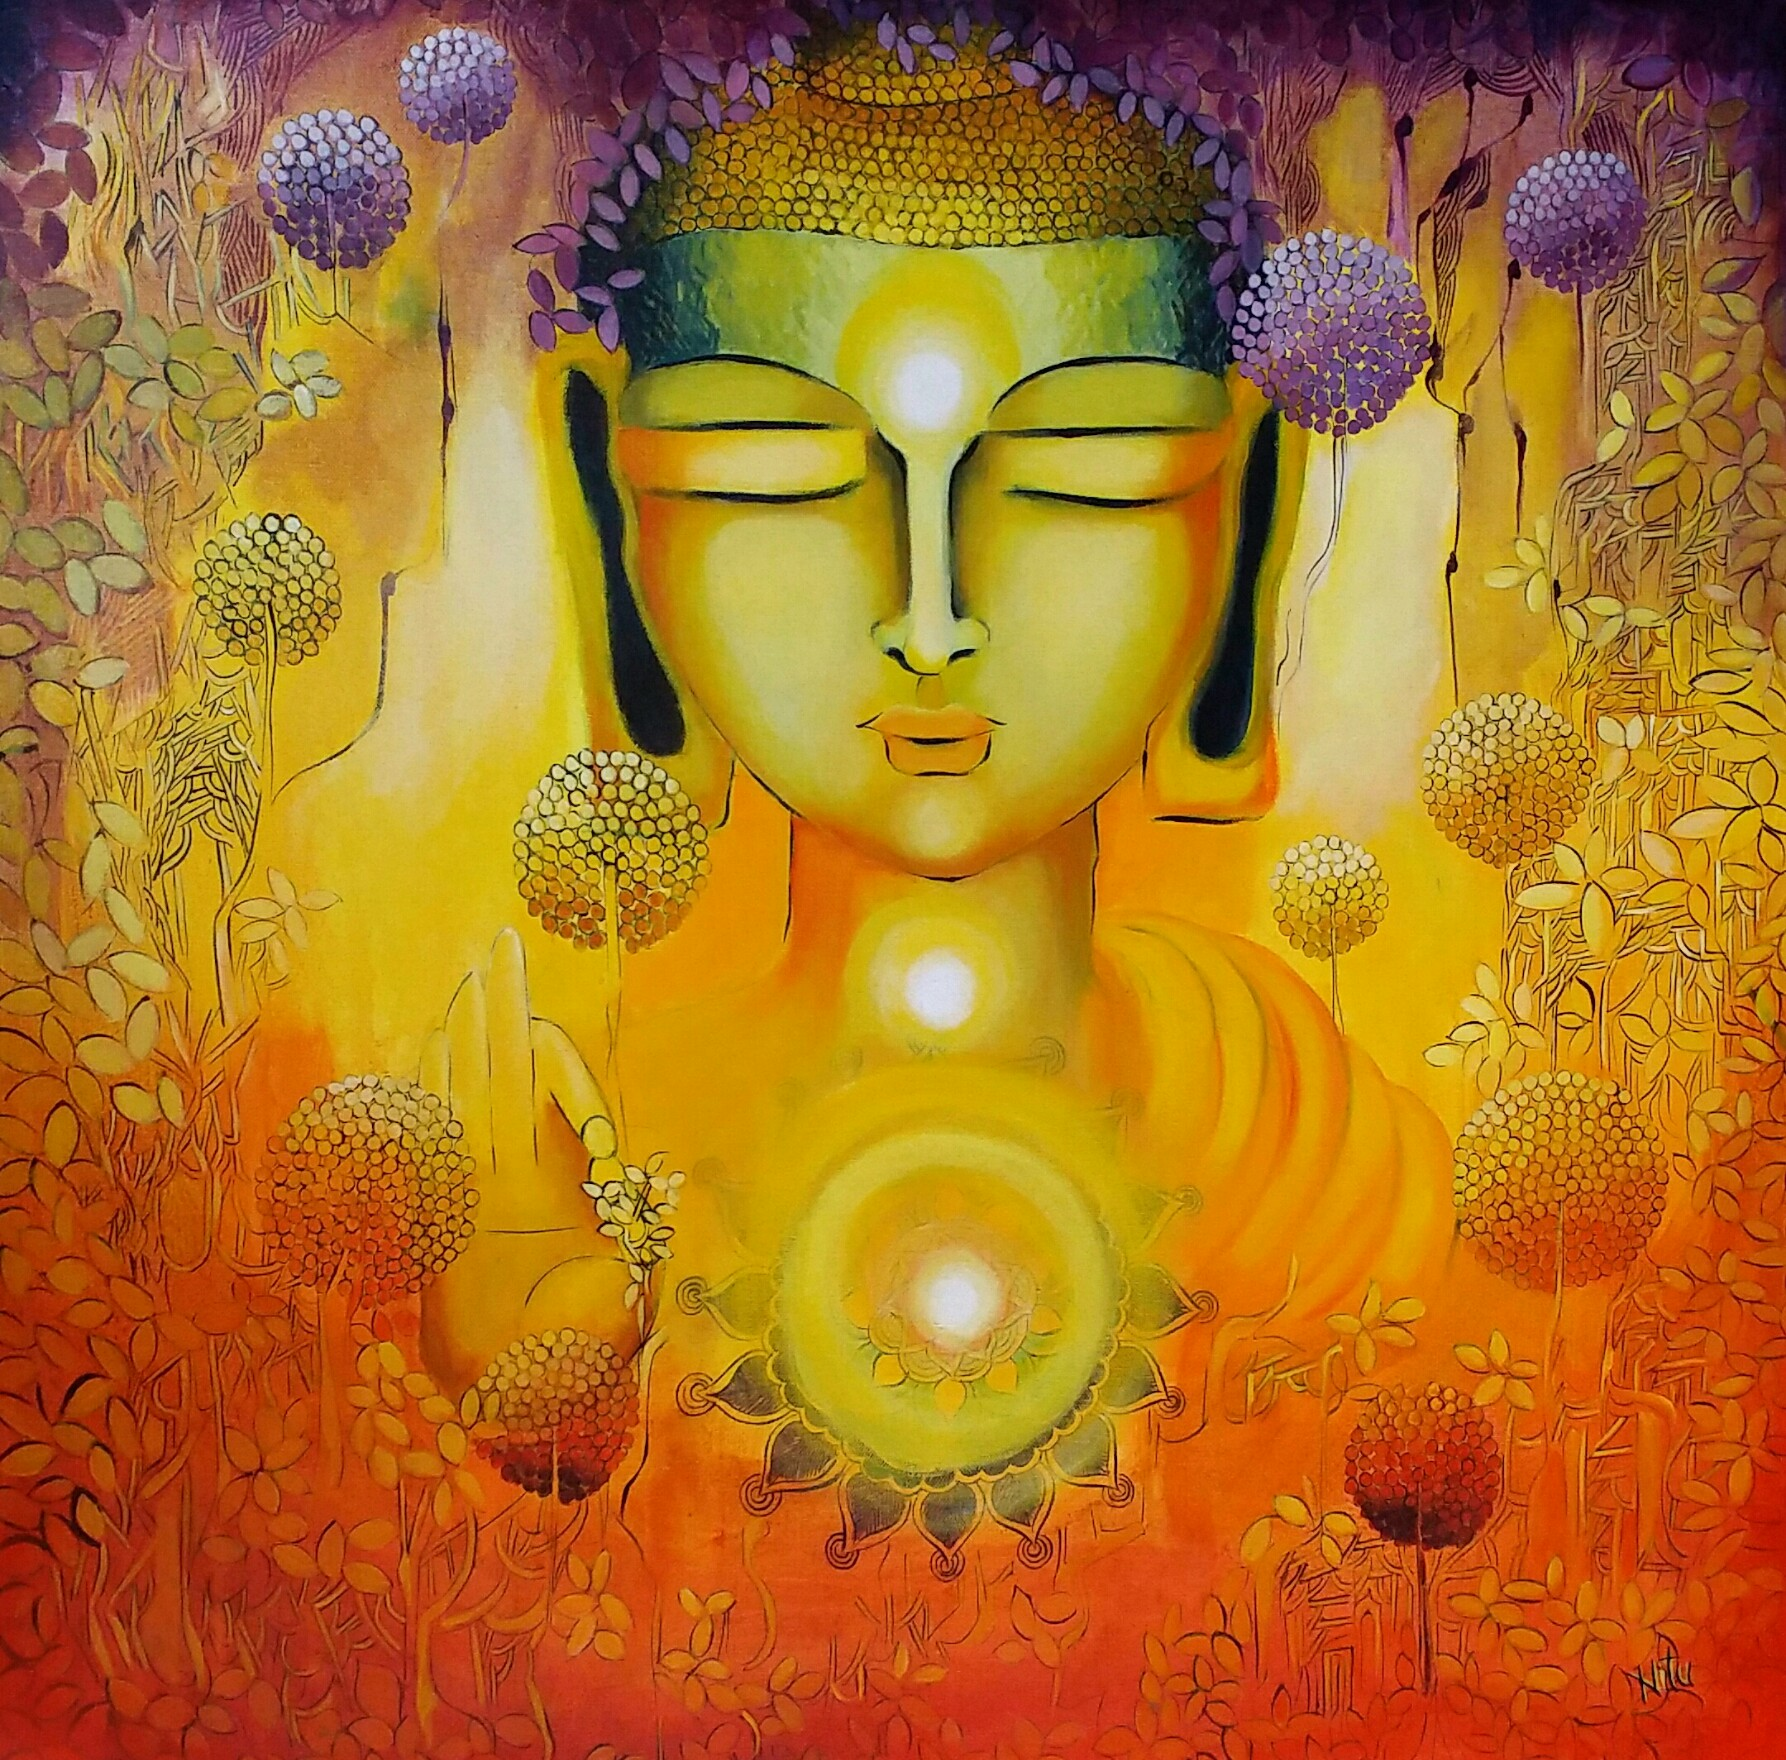 Glimpse of Buddha enlightenment 10541